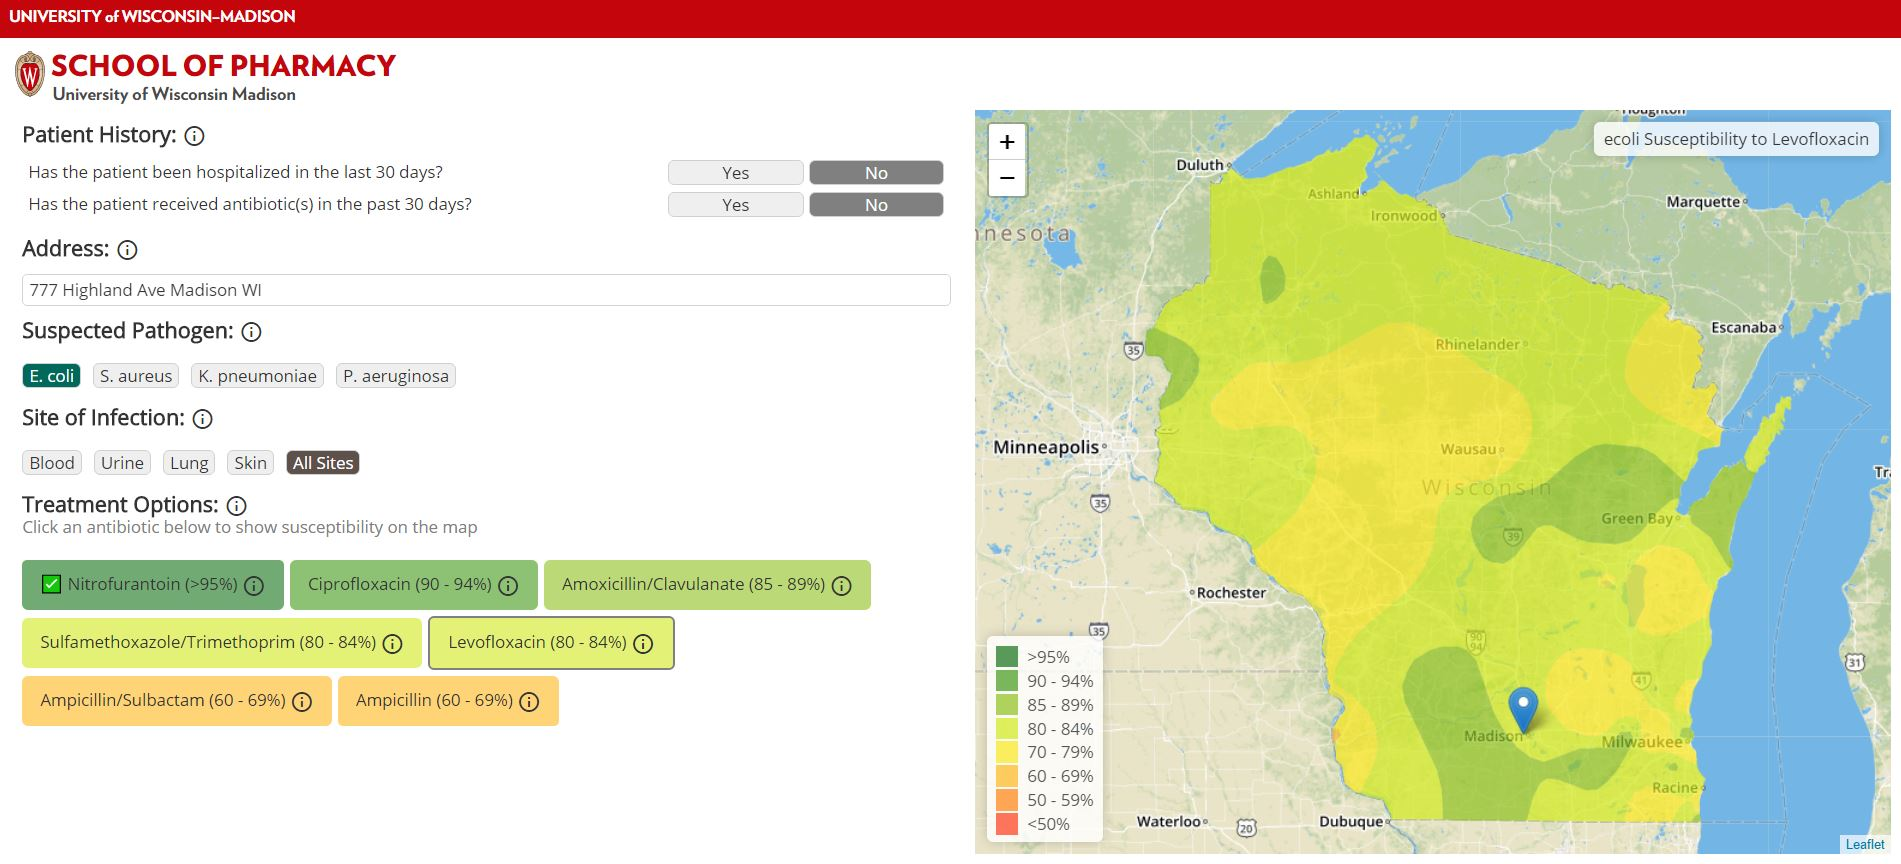 Antibiotic resistance across Wisconsin revealed by new maps